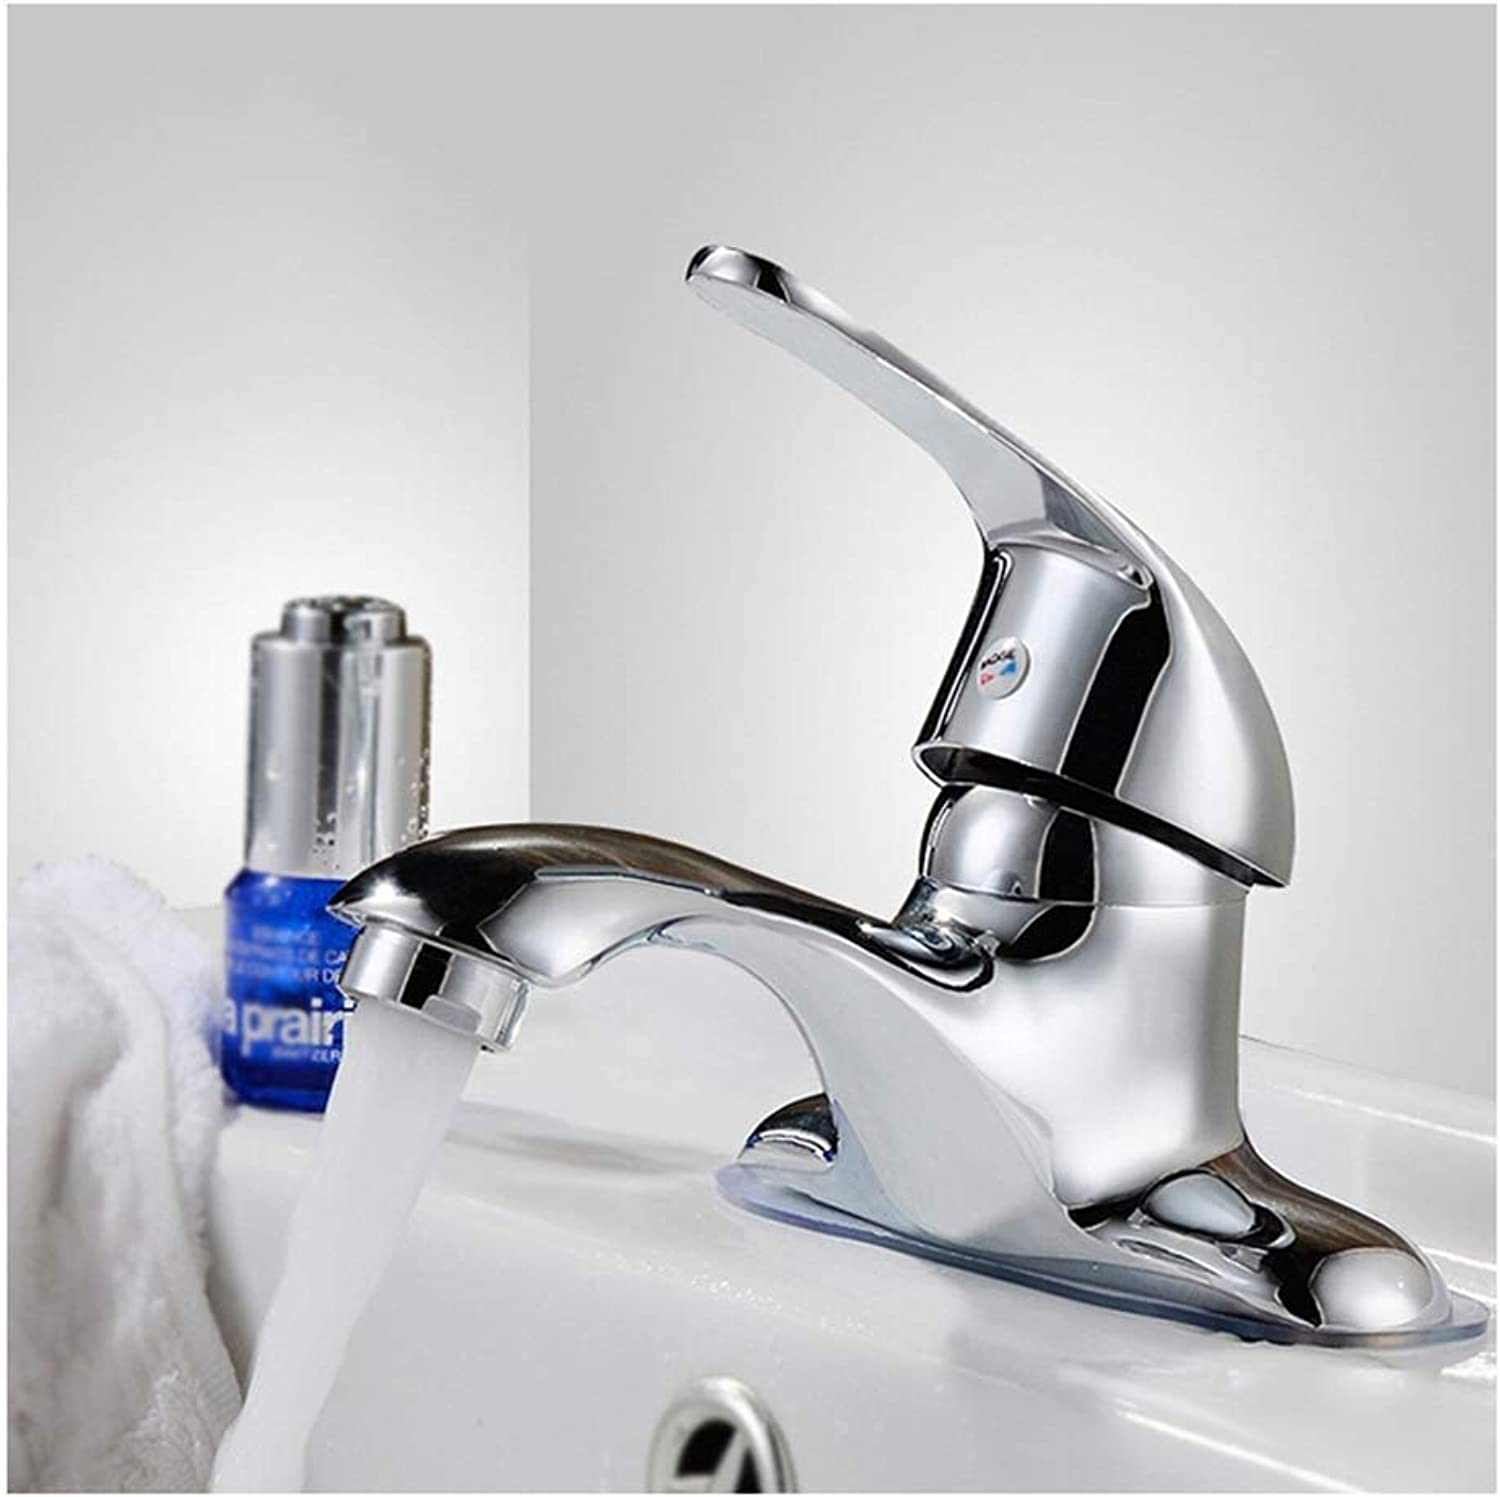 JBP Max Faucet Household Copper Double Hole Wash Basin Hot And Cold Water Faucet Mixing Valve Faucet Copper Main Body-42